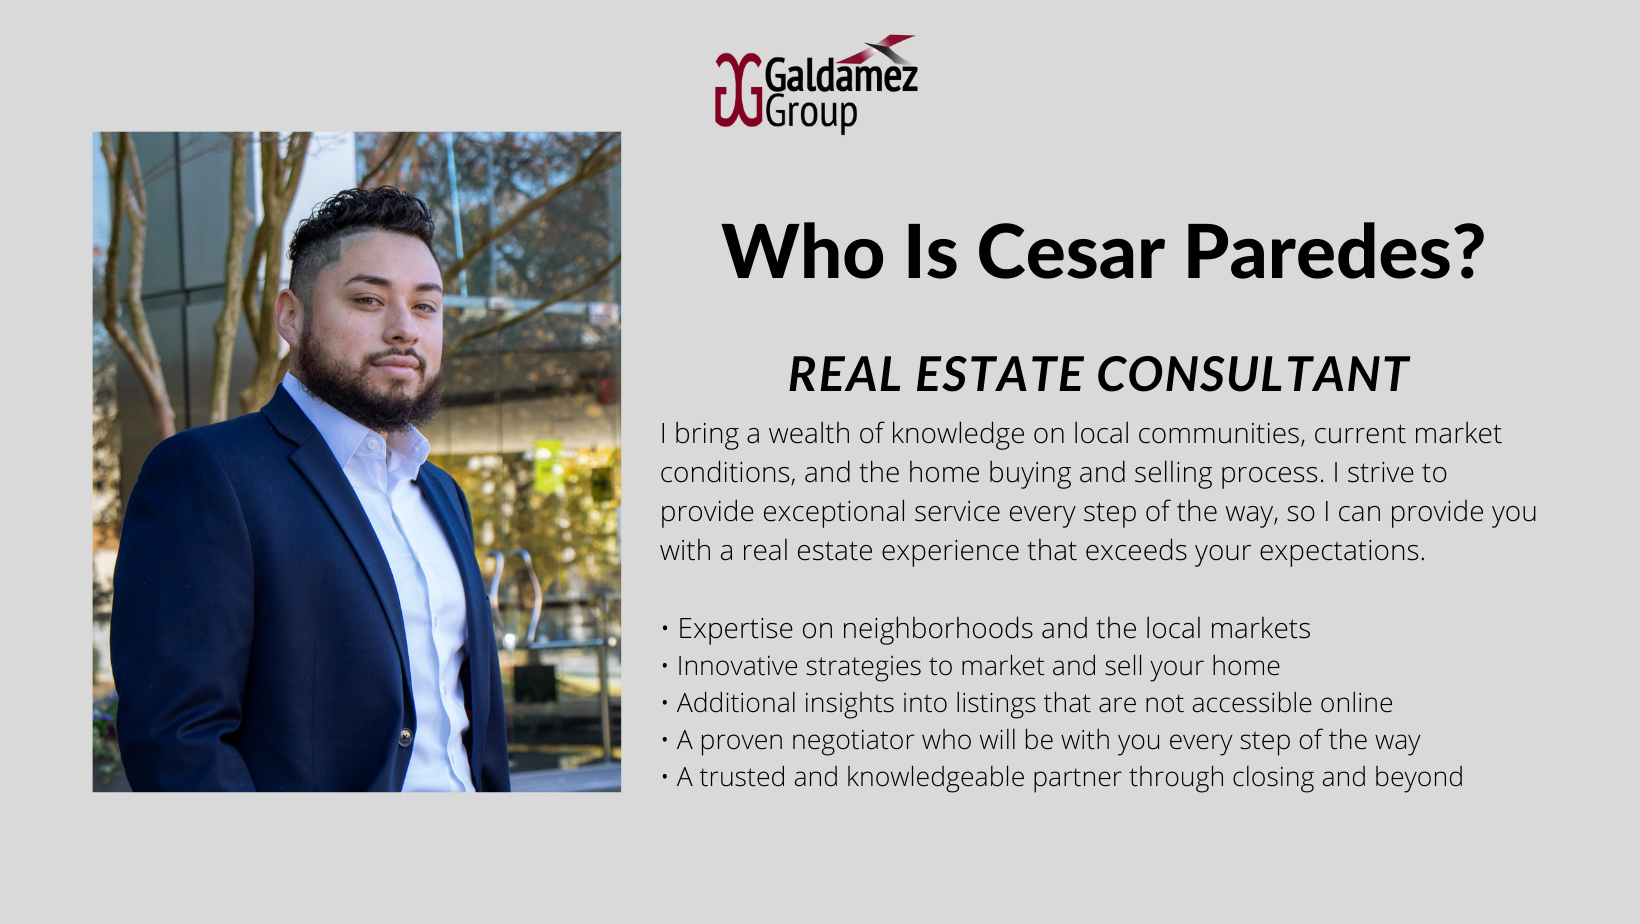 Cesar Paredes, Real Estate Consultant